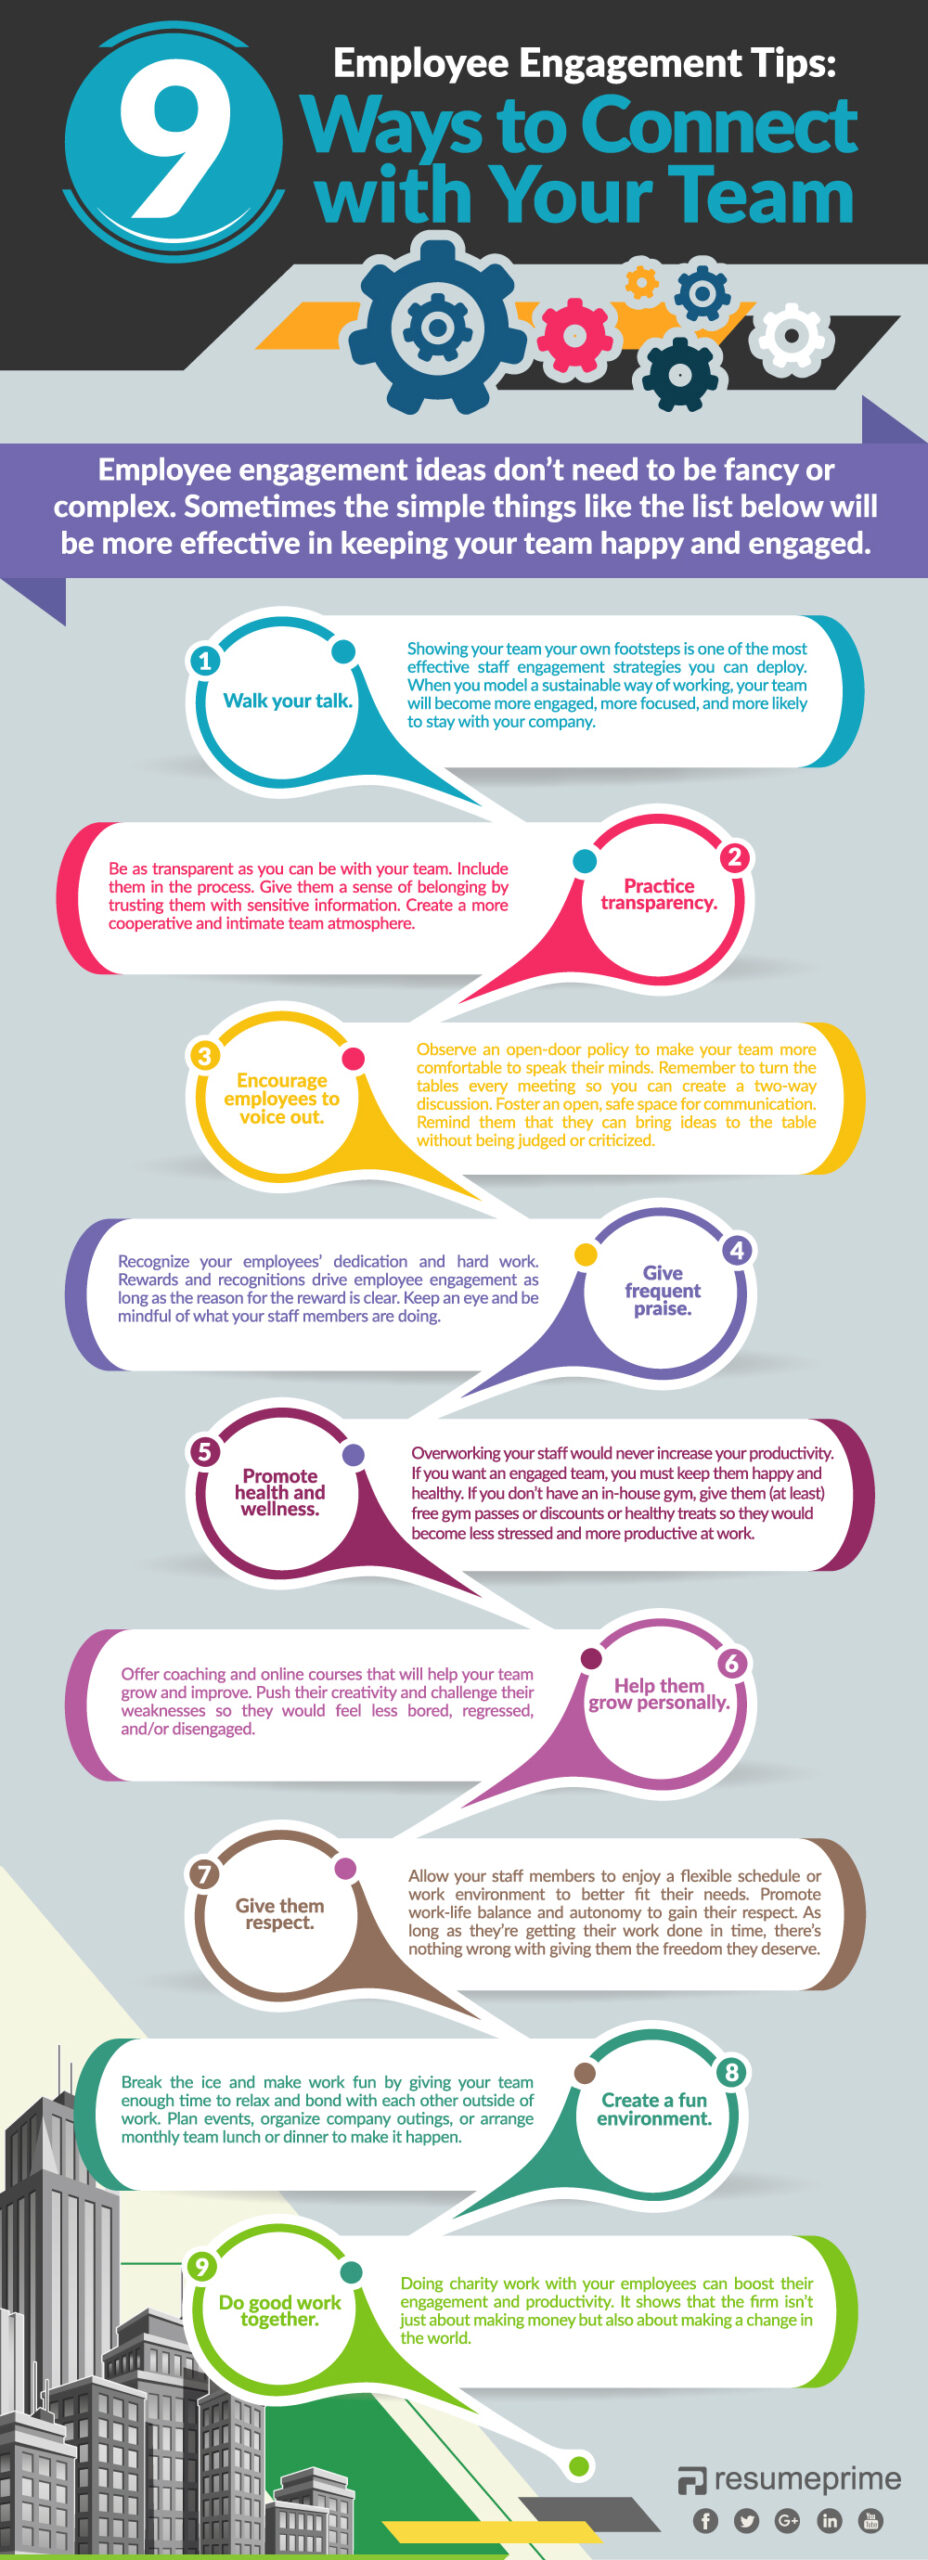 Employee Engagement Ideas and Ways to Connect with Your Team - Infographic - Resume Prime